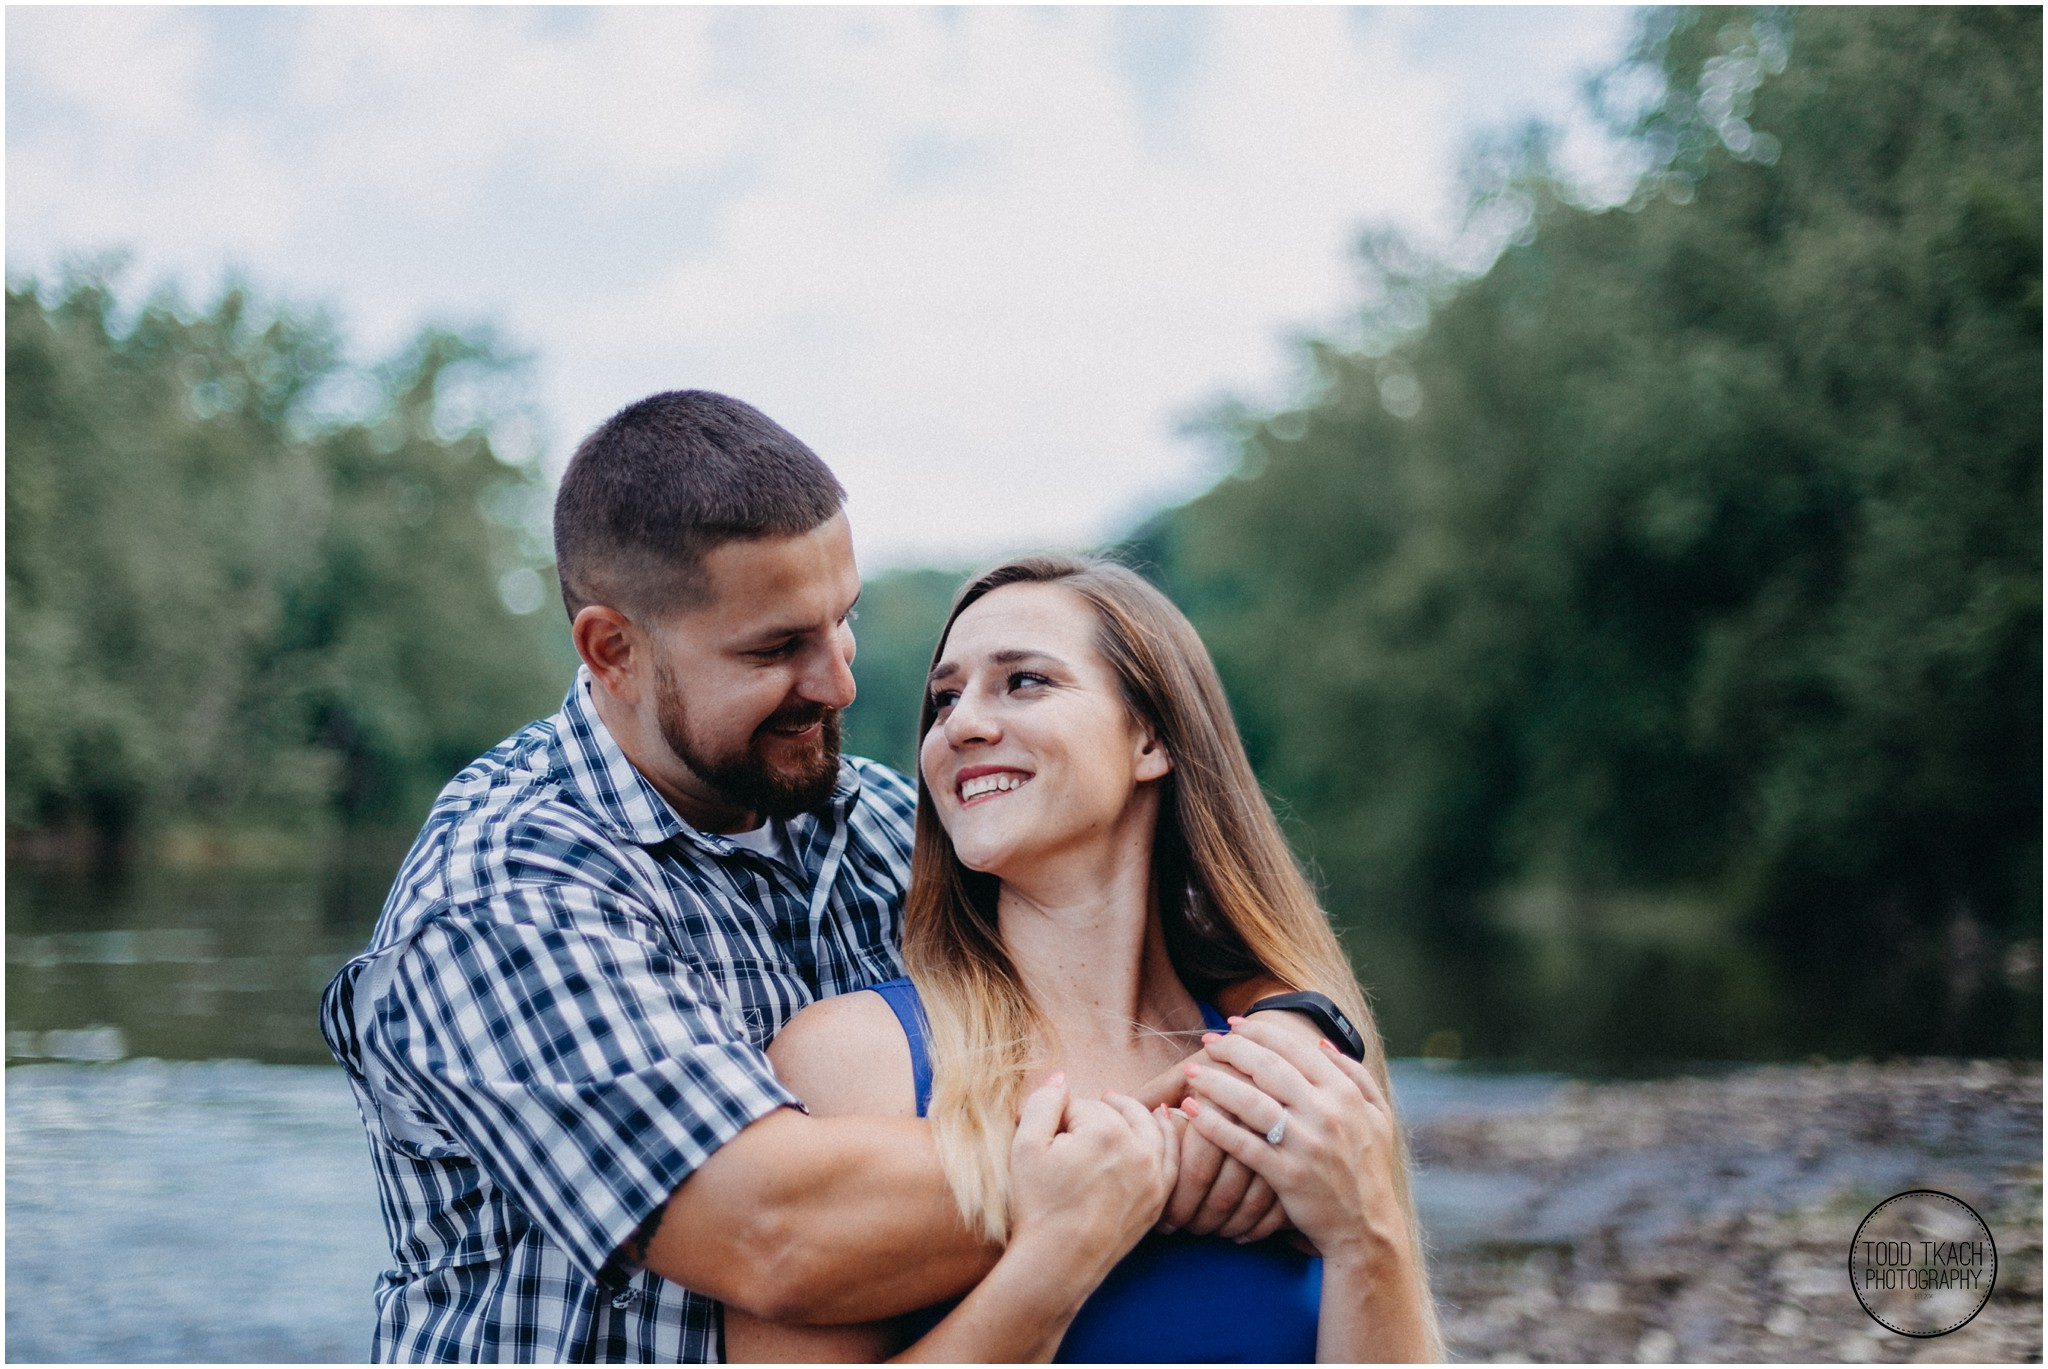 Kim & Brandon Engagement - Laughter Portrait